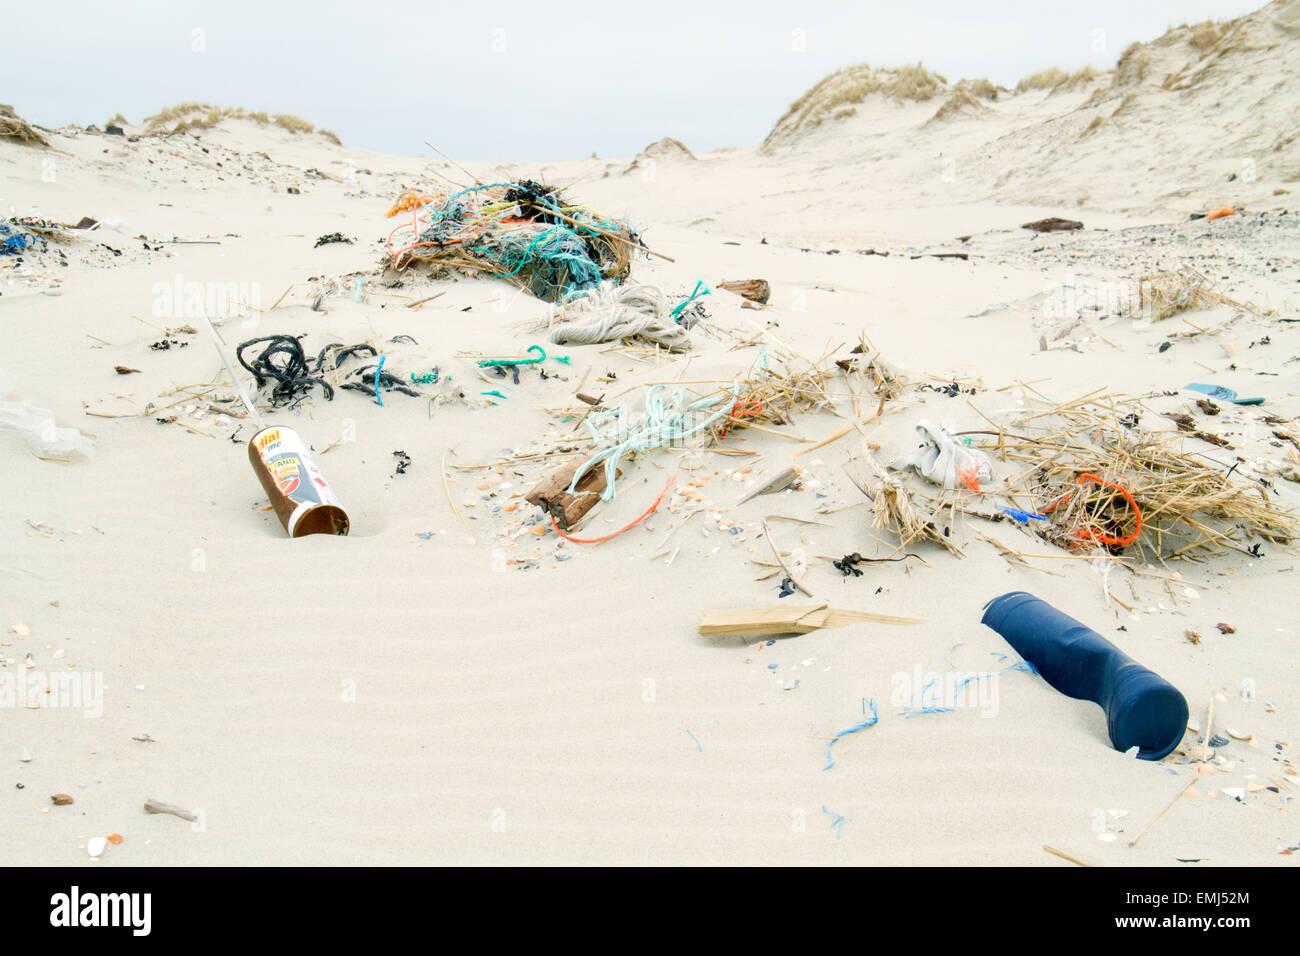 Plastic waste washed ashore on a beach - Stock Image